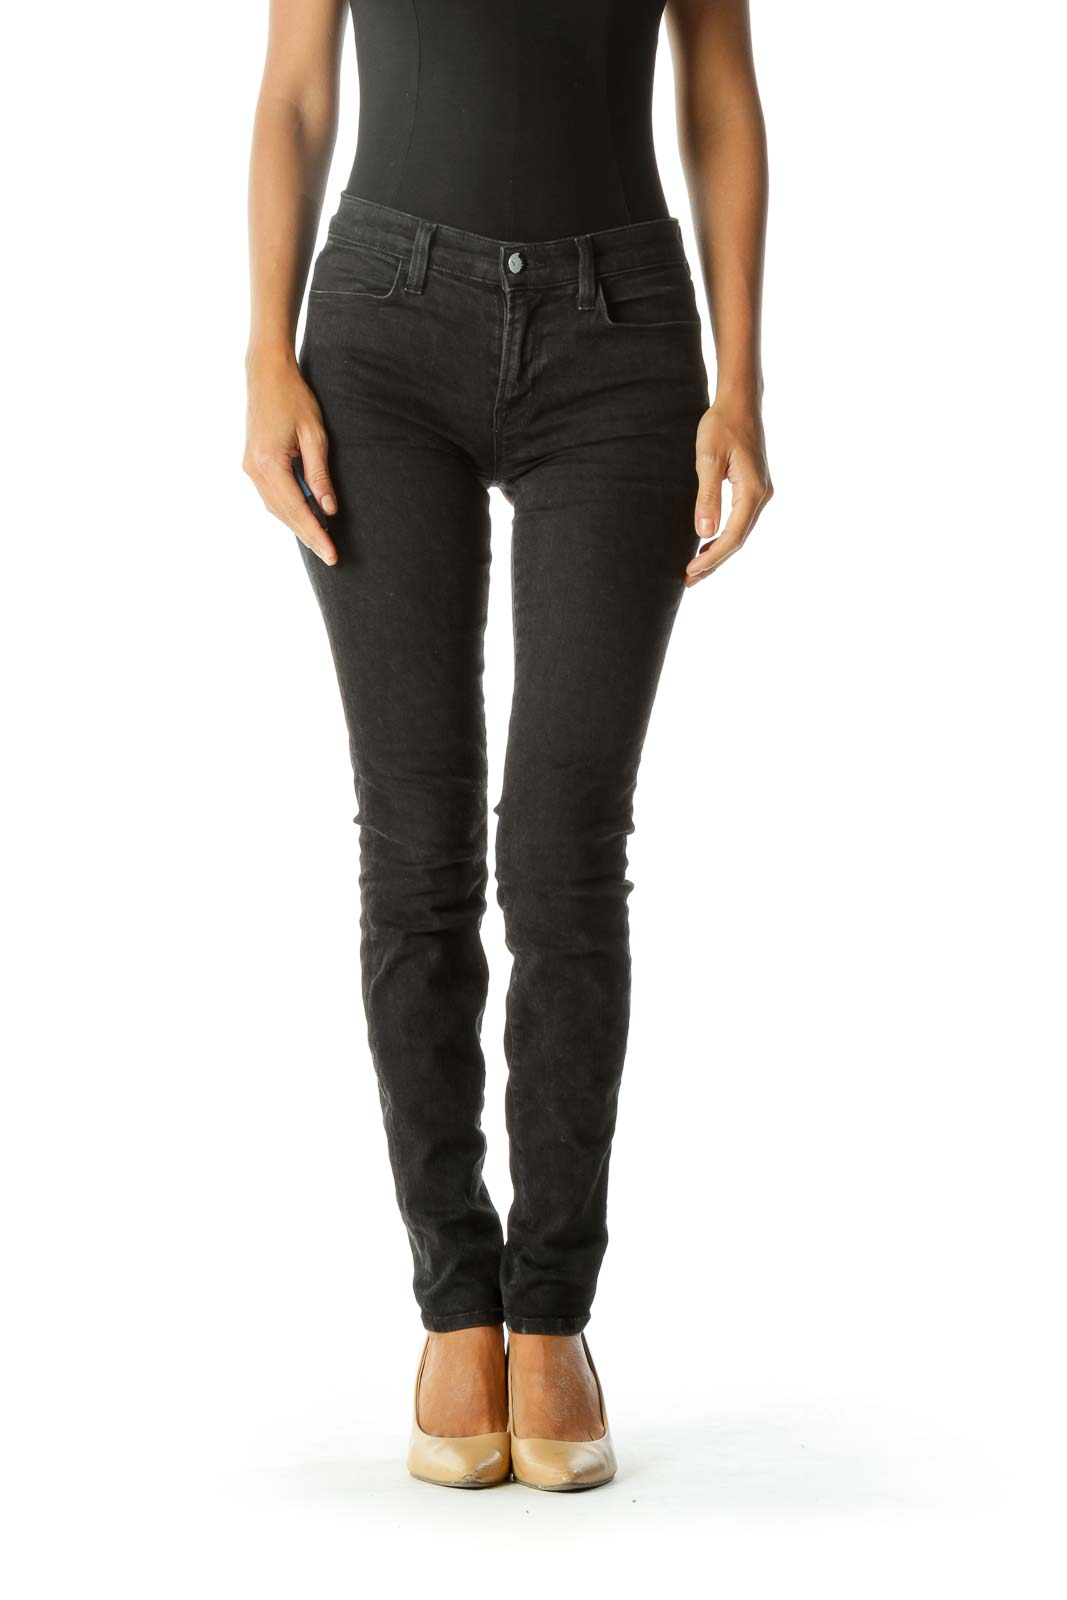 Black Leopard-Print Super Skinny Jeans with Silver Engraved Button